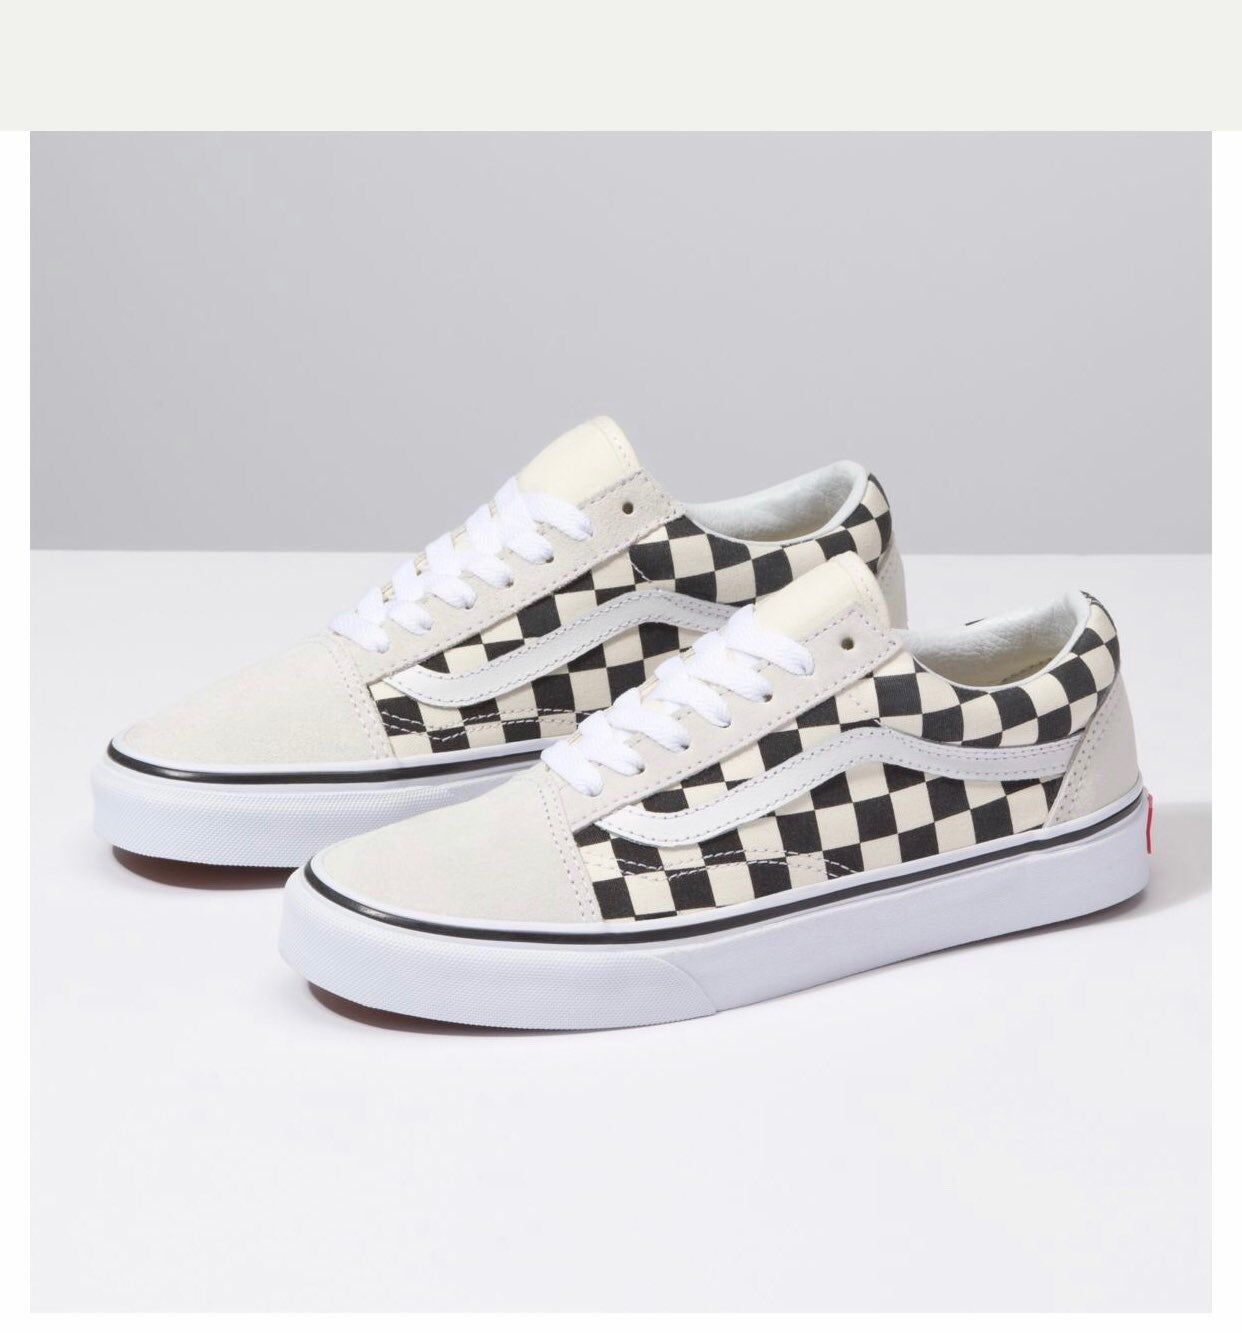 The Checkerboard Old Skool The Vans Classic Skate Shoe And First To Bare The Iconic Sidestripe Is A Low Top Lace Up Turnschuhe Women S Shoes Vans Schachbrett